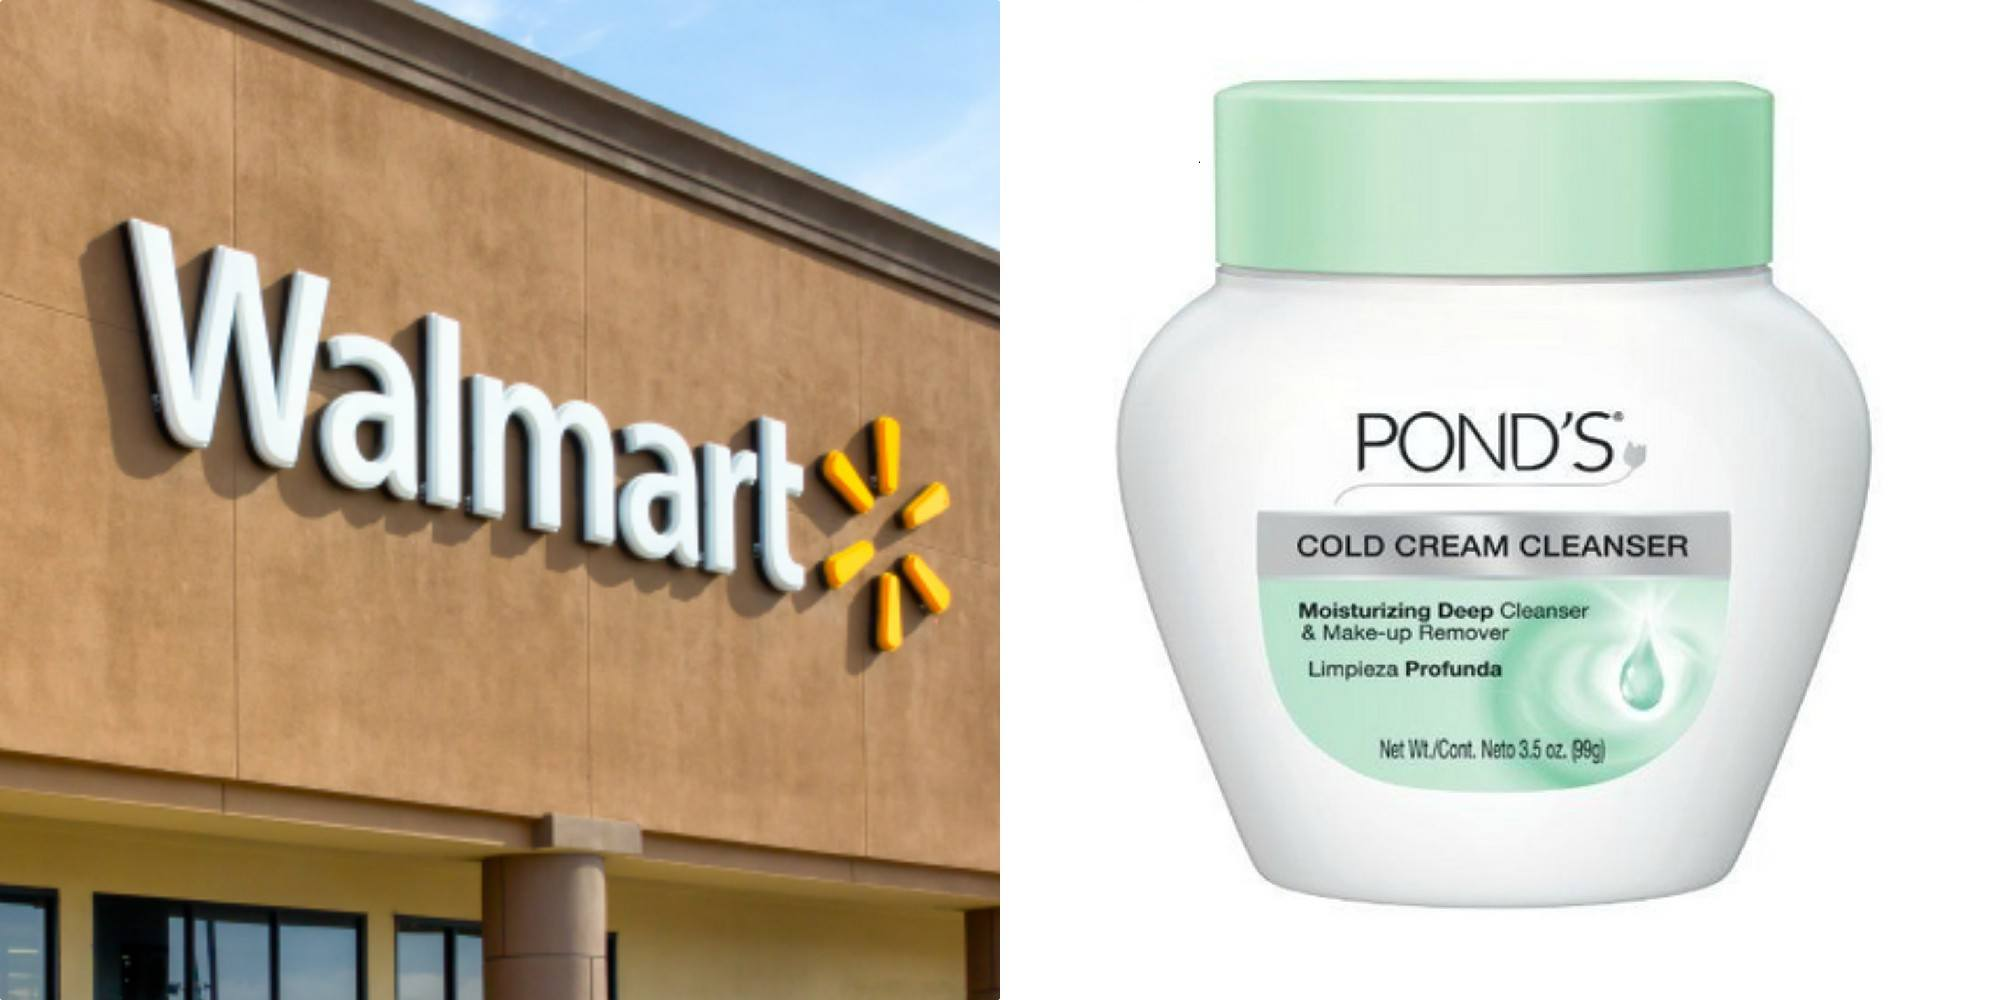 You Can Find These Cult Favorite Beauty Products At Walmart